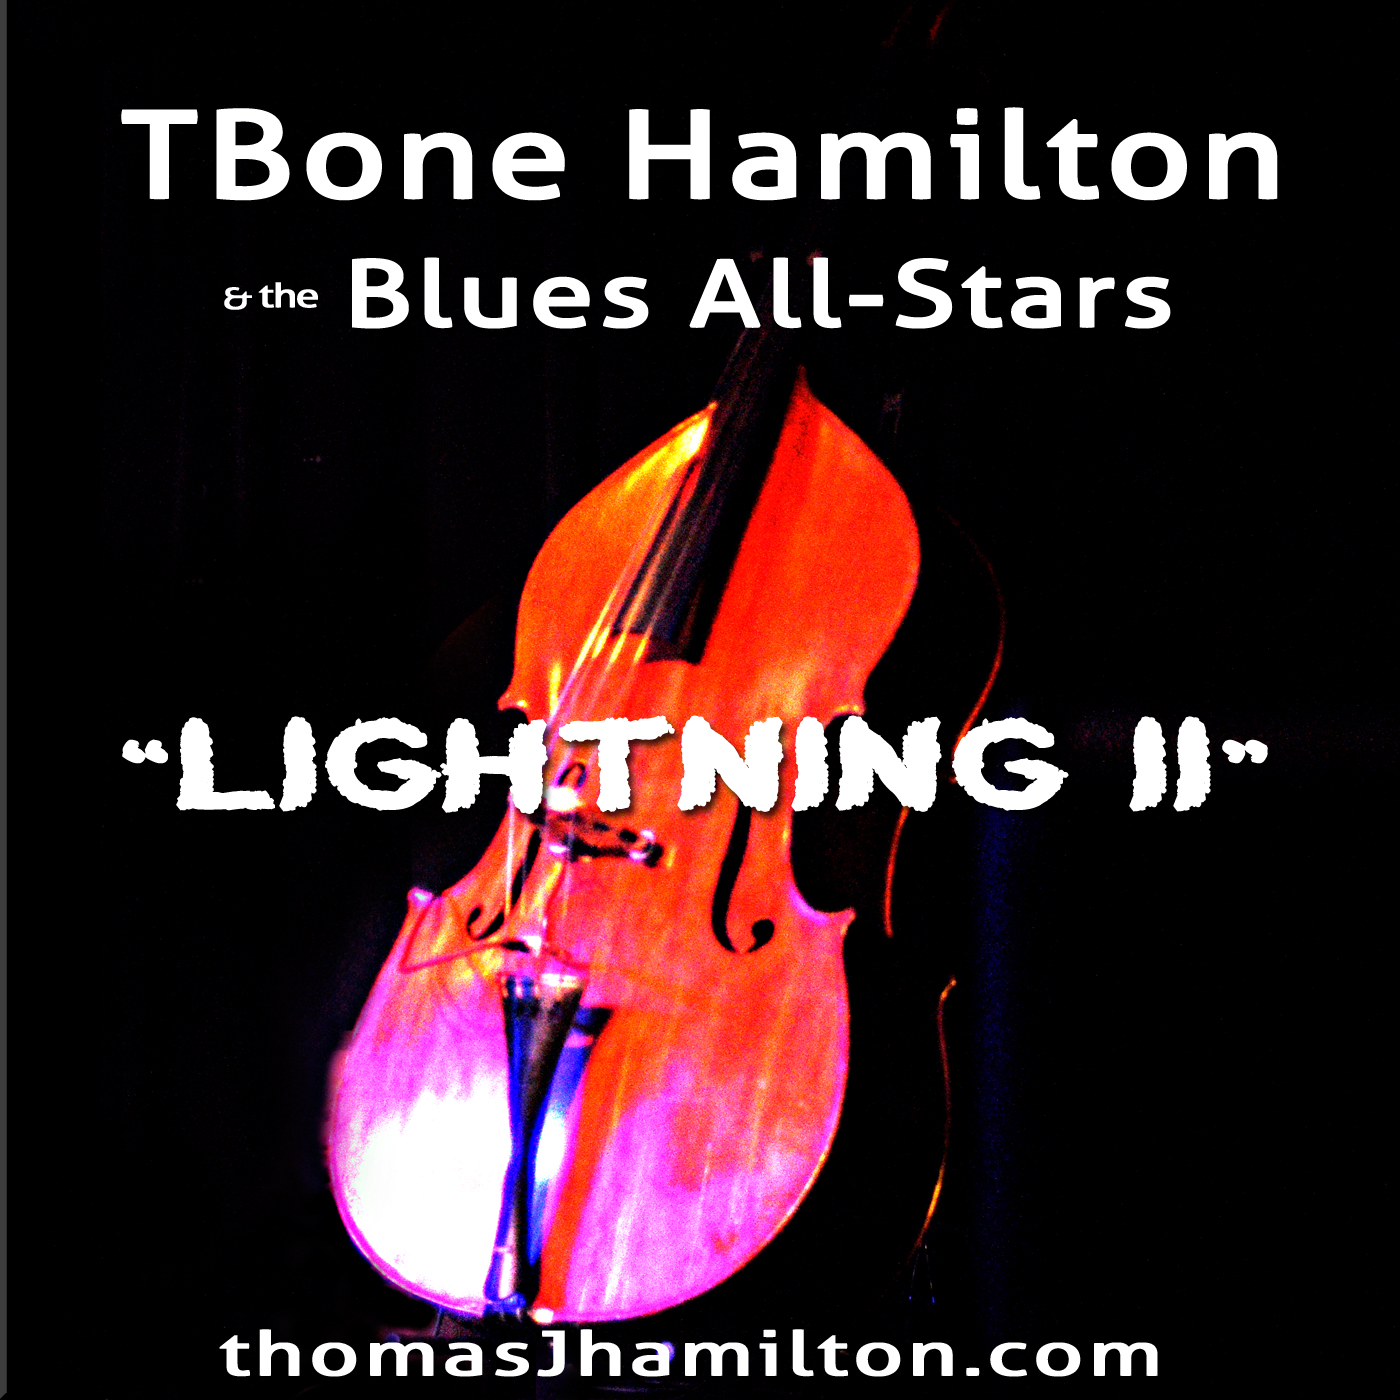 Lighting II – New Blues Single by TBone Hamilton